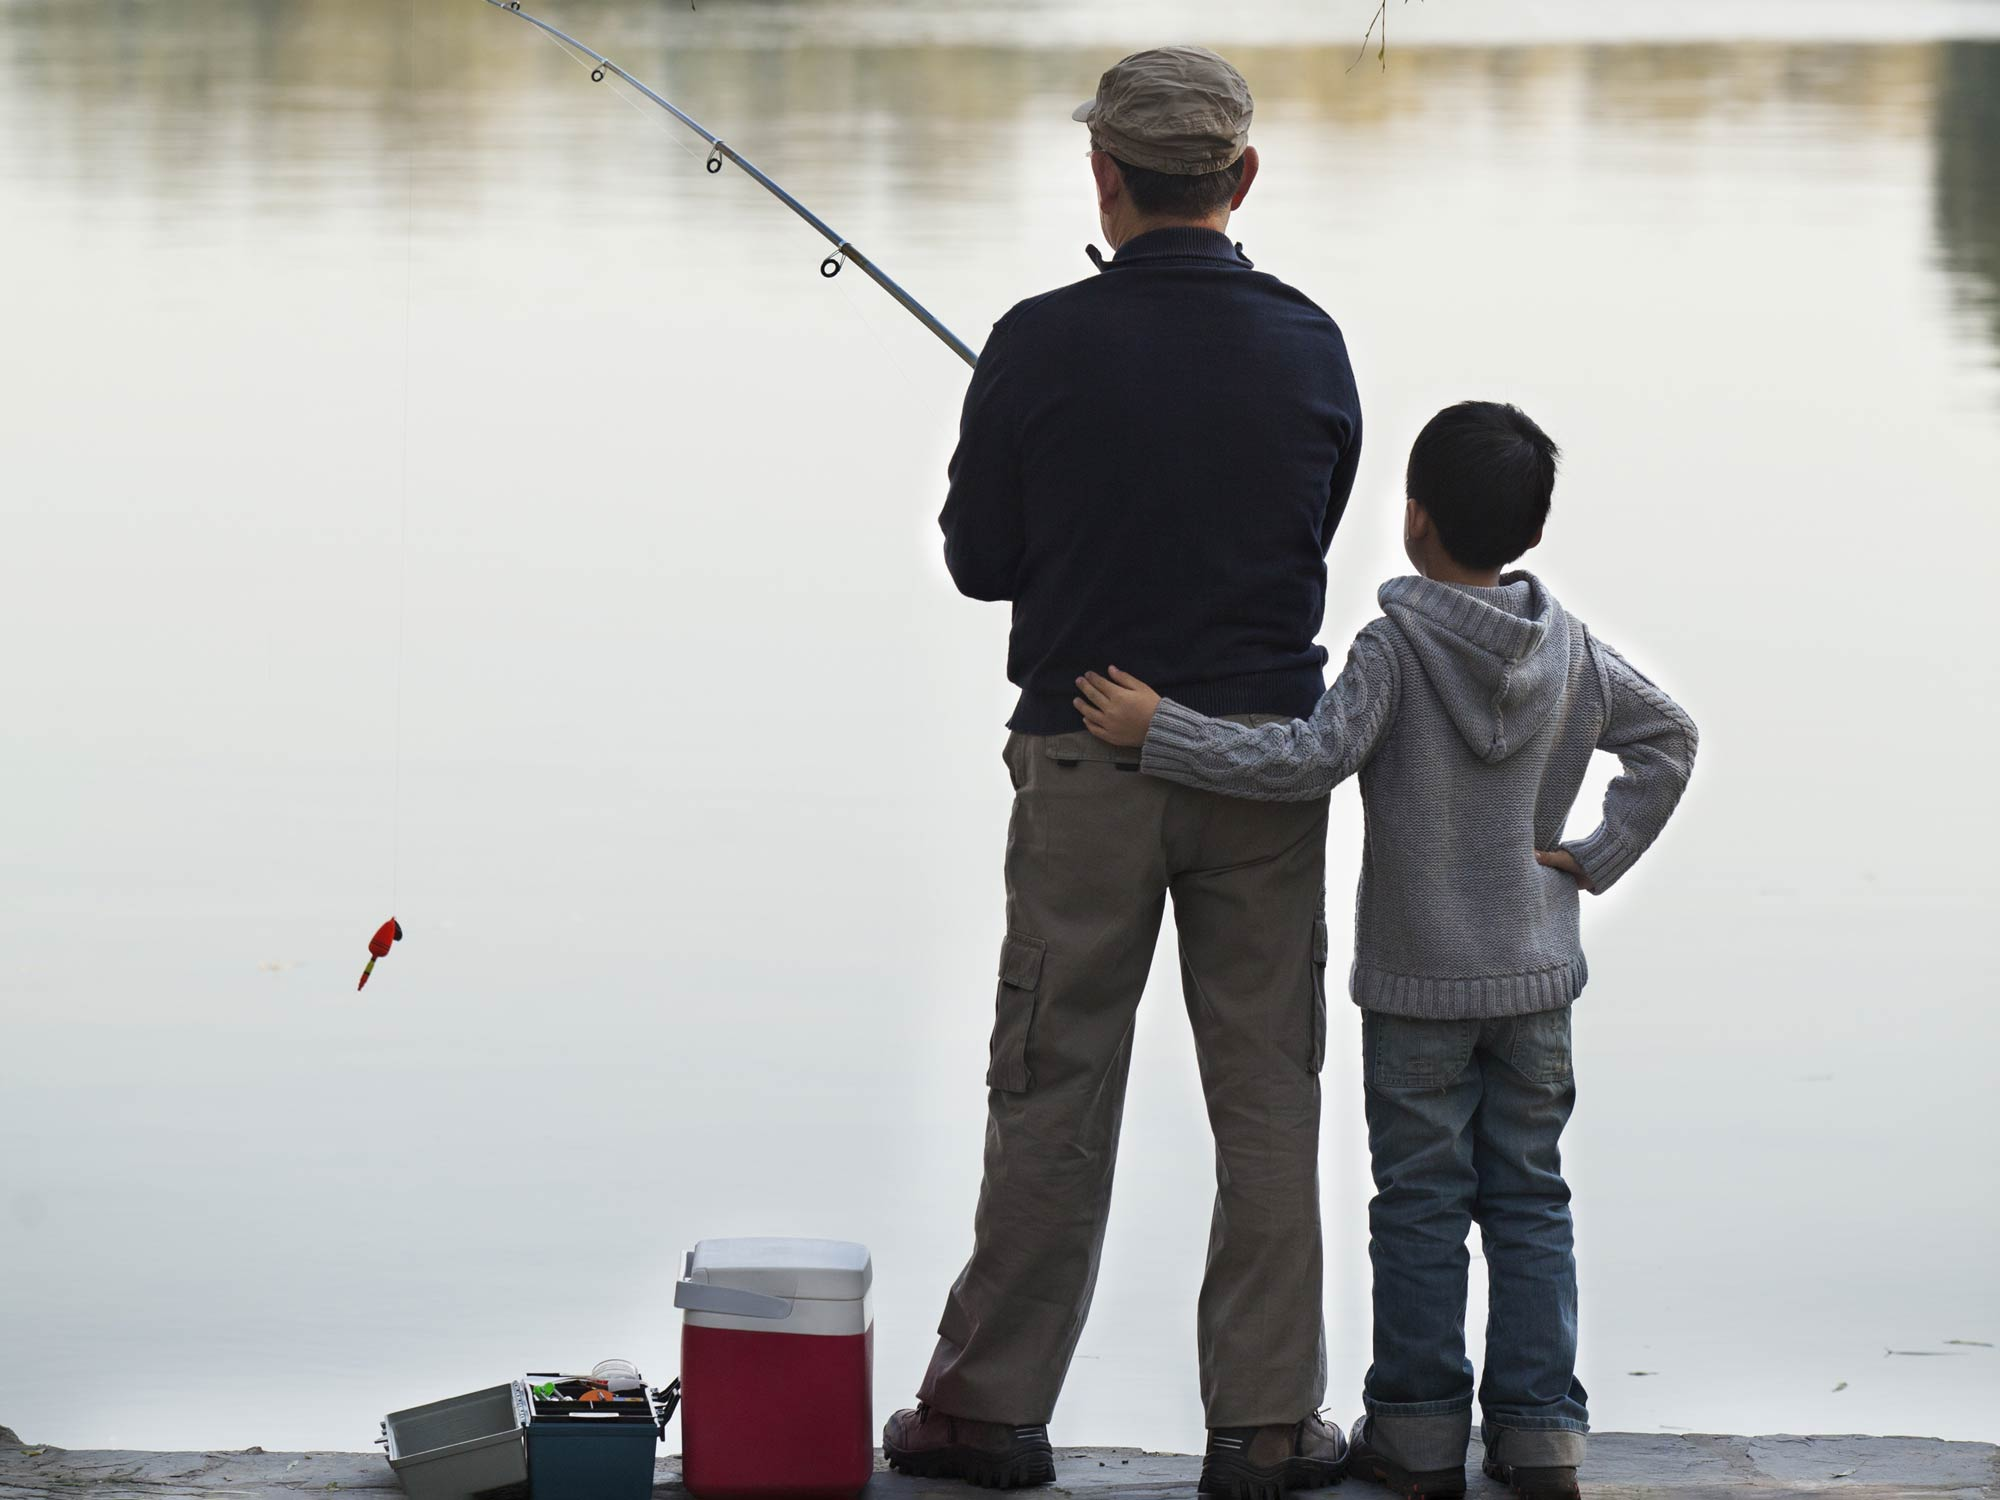 Man and a boy fishing from the shore together